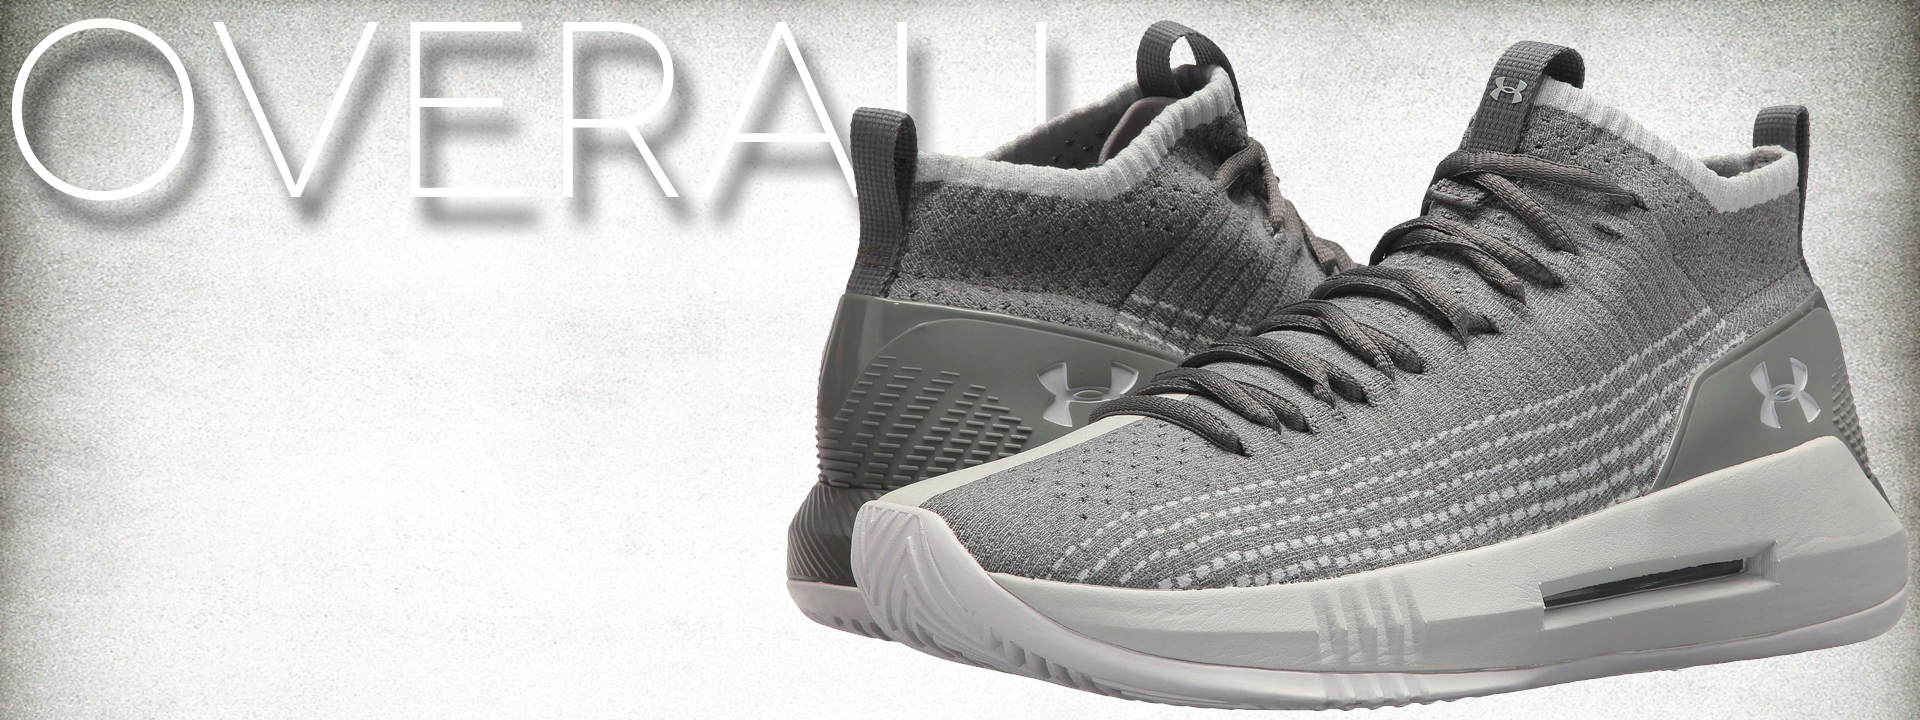 Under Armour Heat Seeker Performance Review overall